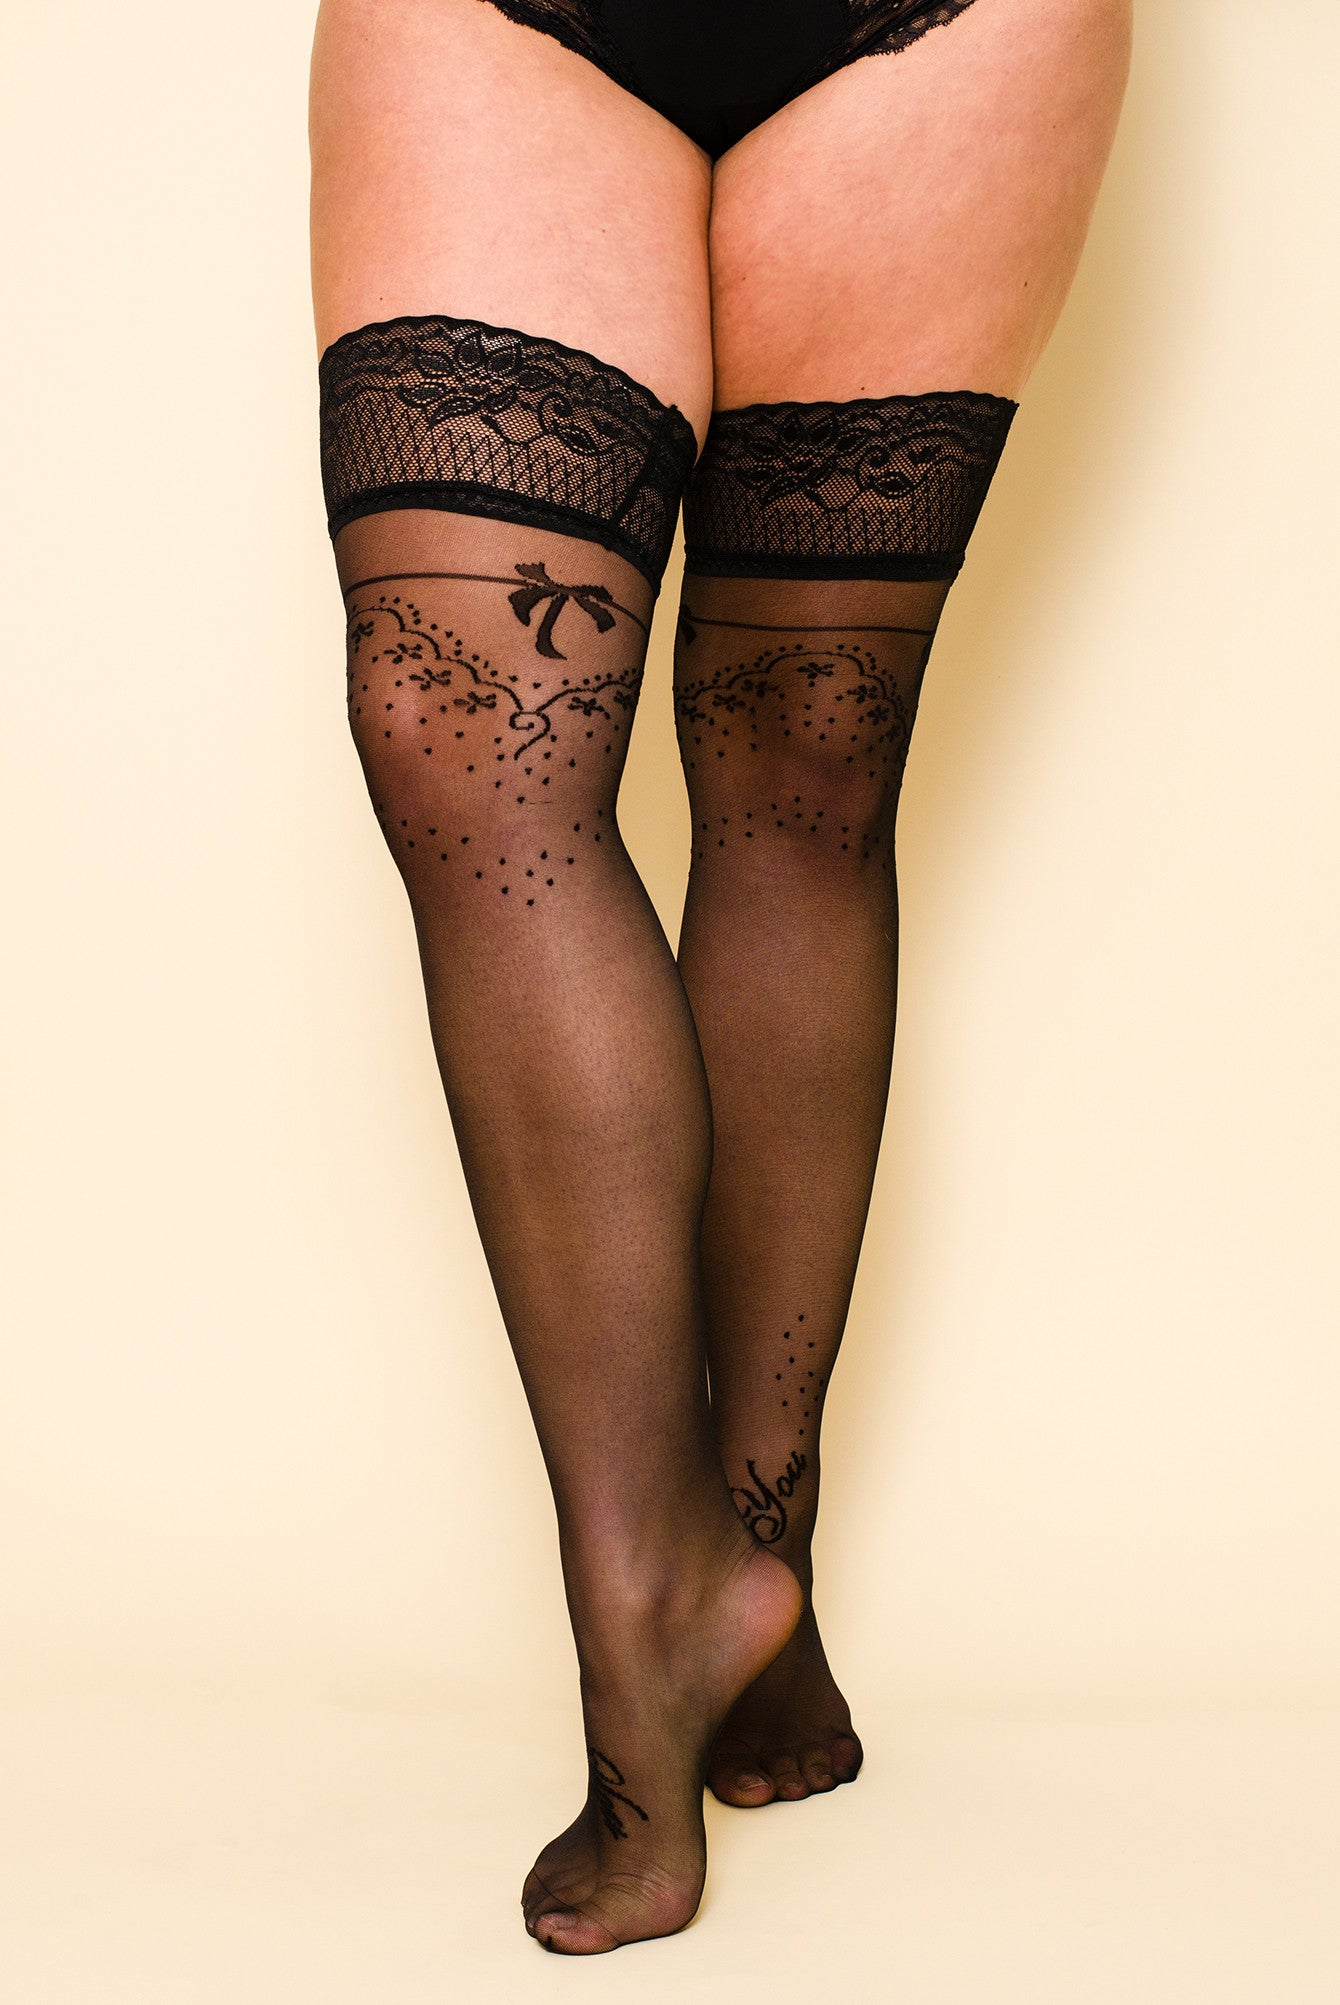 Black Italian Embroidered  Hold-Ups Stockings Nylons Lace Top